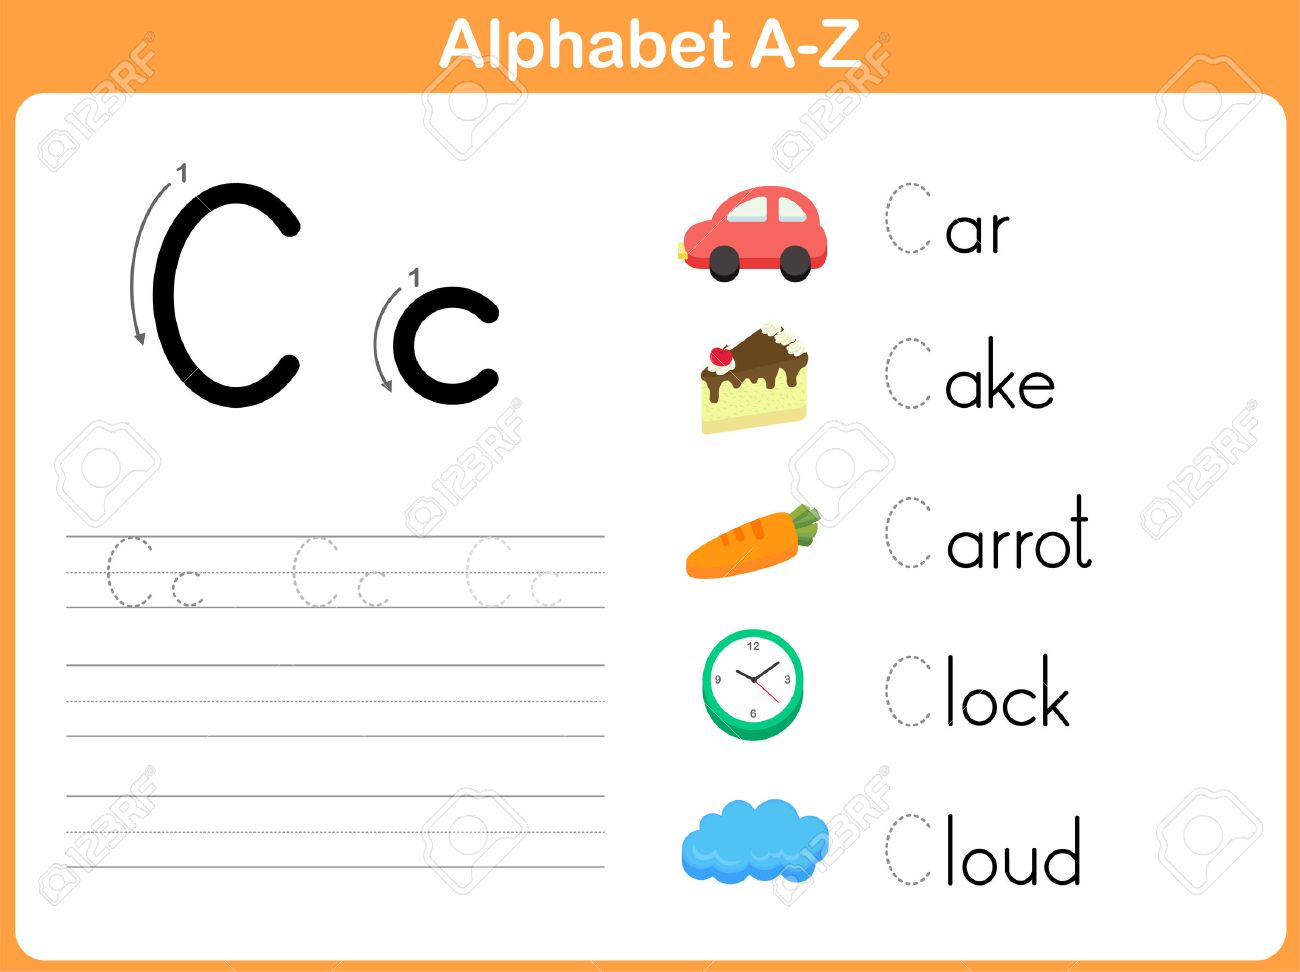 Alphabet Tracing Worksheet: Writing A-Z with regard to Alphabet Tracing Worksheets A-Z